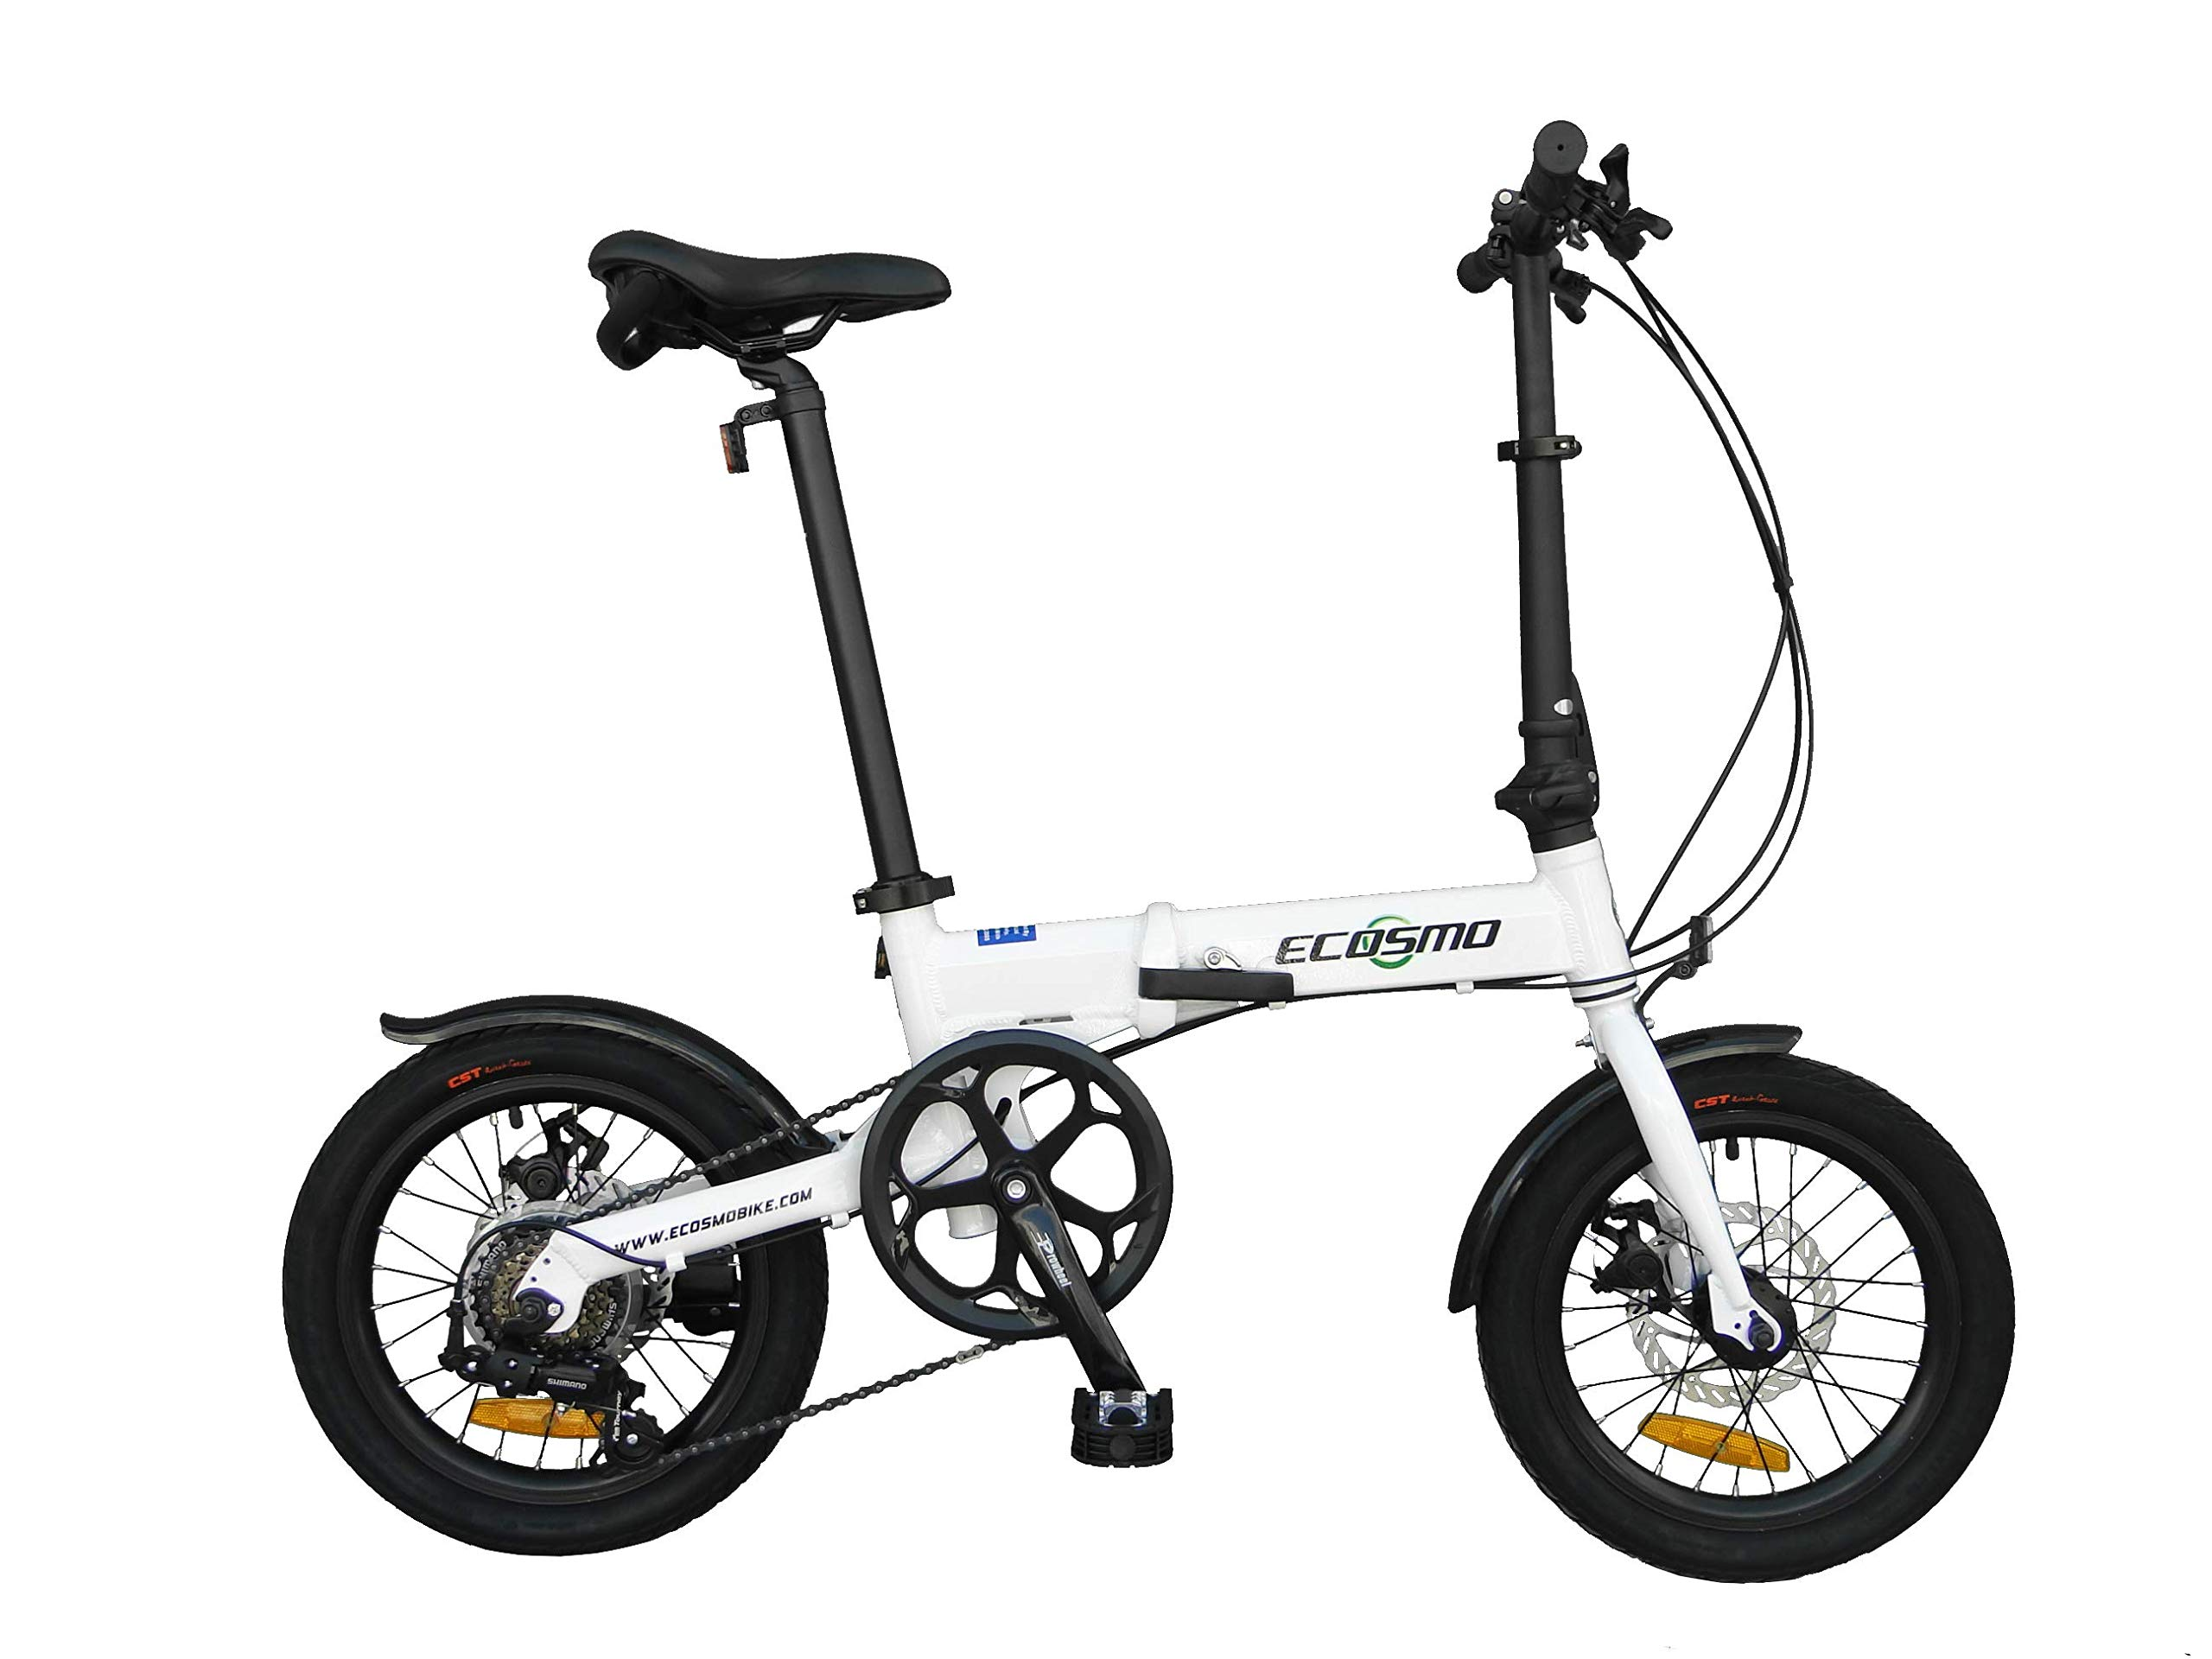 """ECOSMO 16"""" Lightweight Alloy Folding City Bike Bicycle,6 SP,Dual Disc brakes - 16AF02W"""